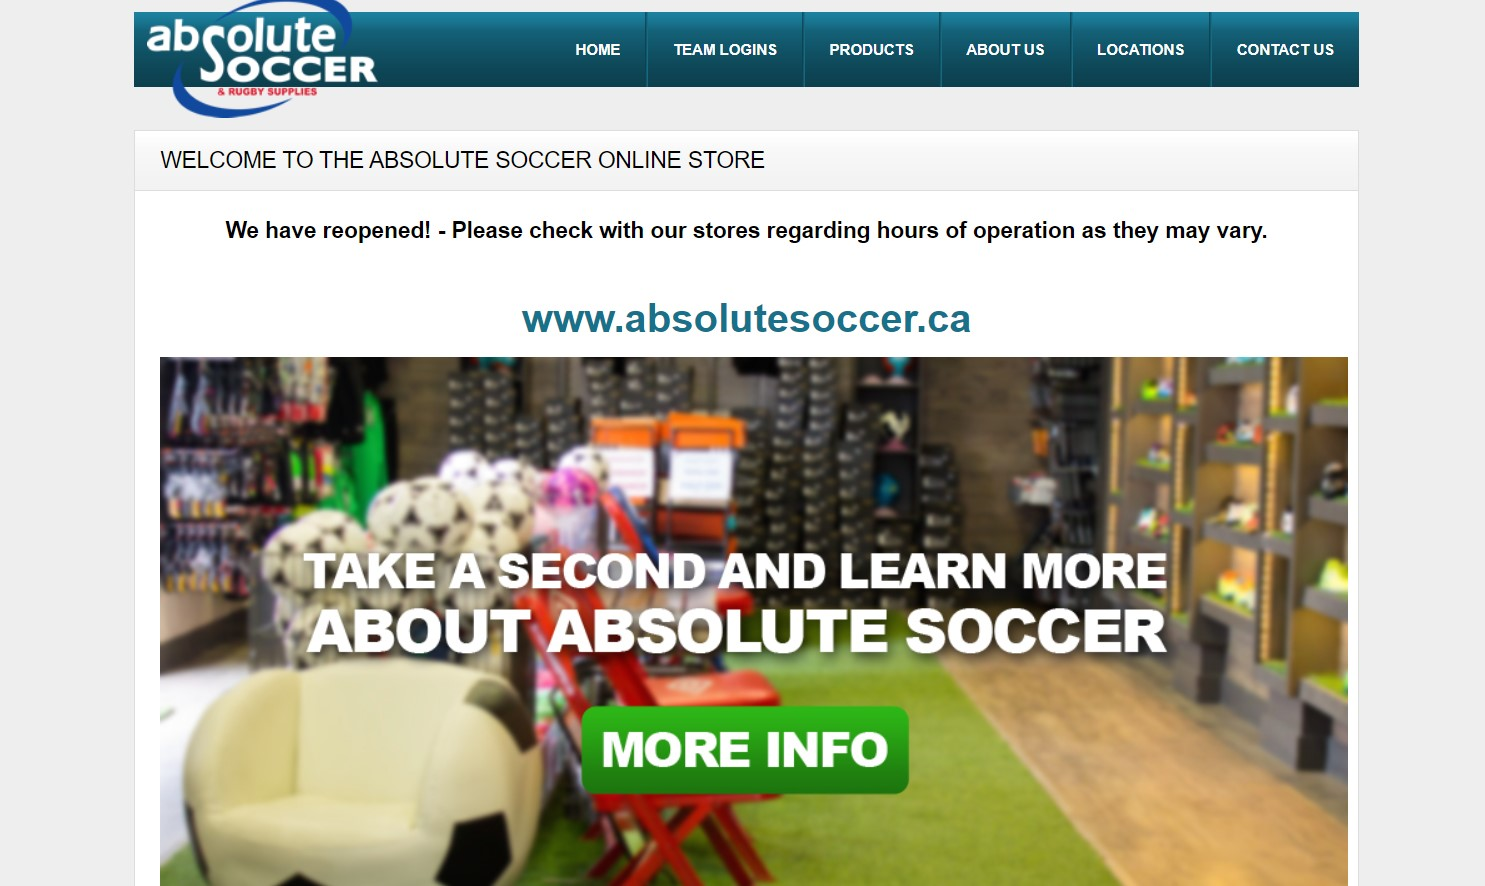 absolute soccer sporting goods store in hamilton